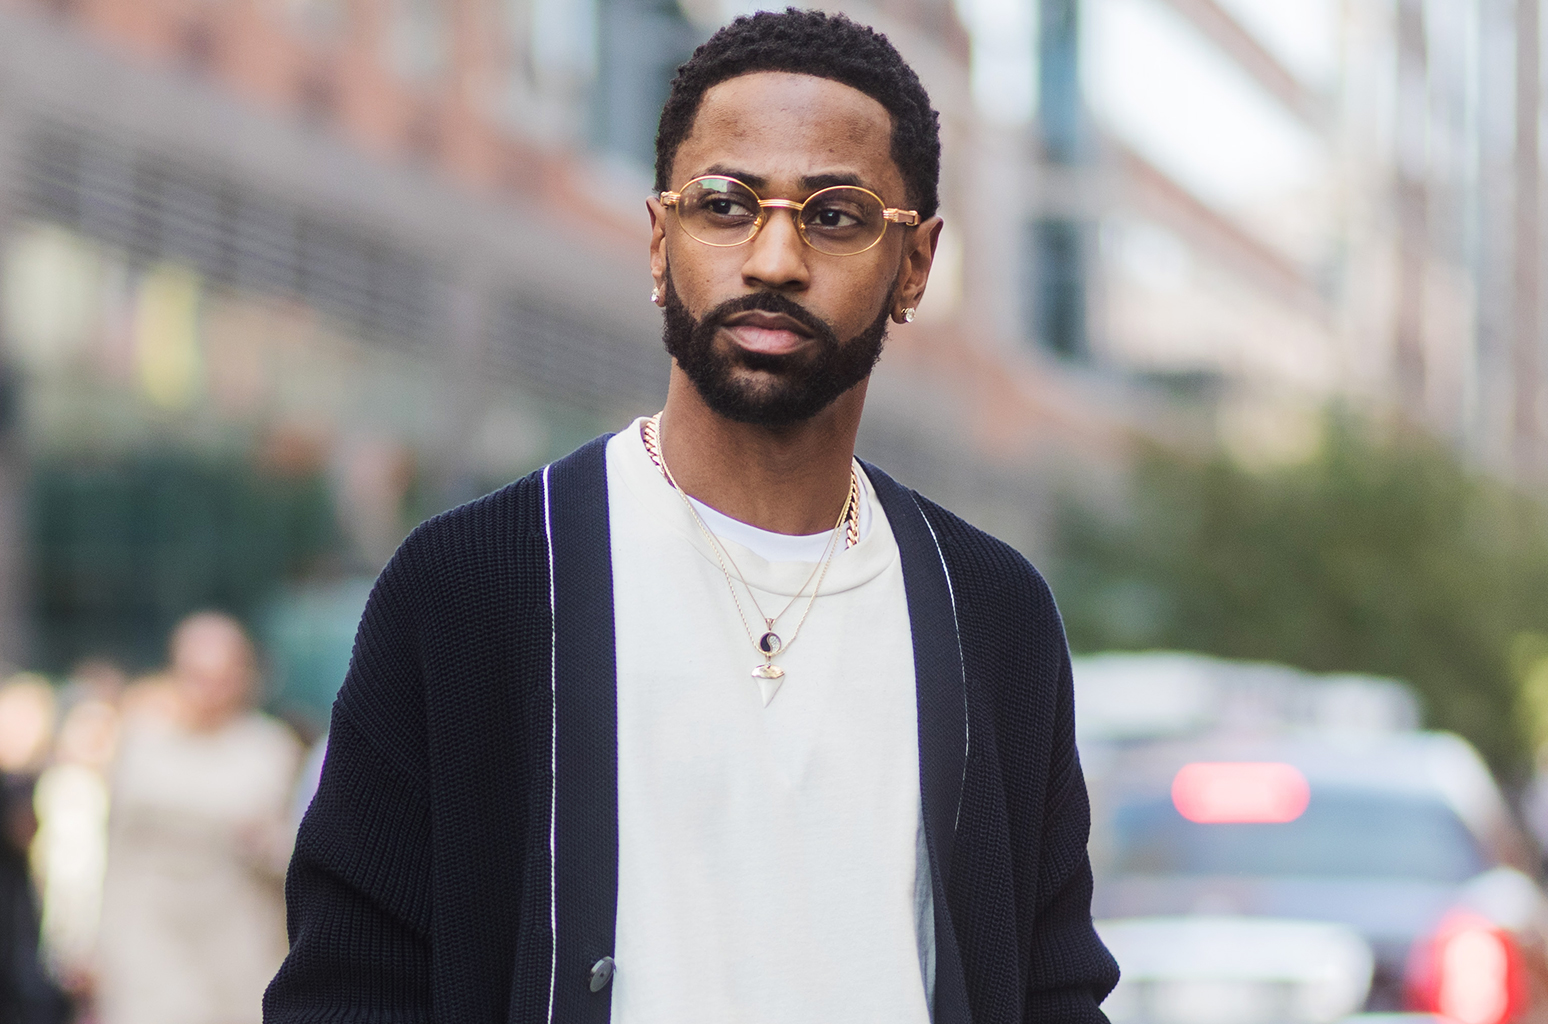 Big Sean Opens Up About Therapy & Mental Health in Empowering Message